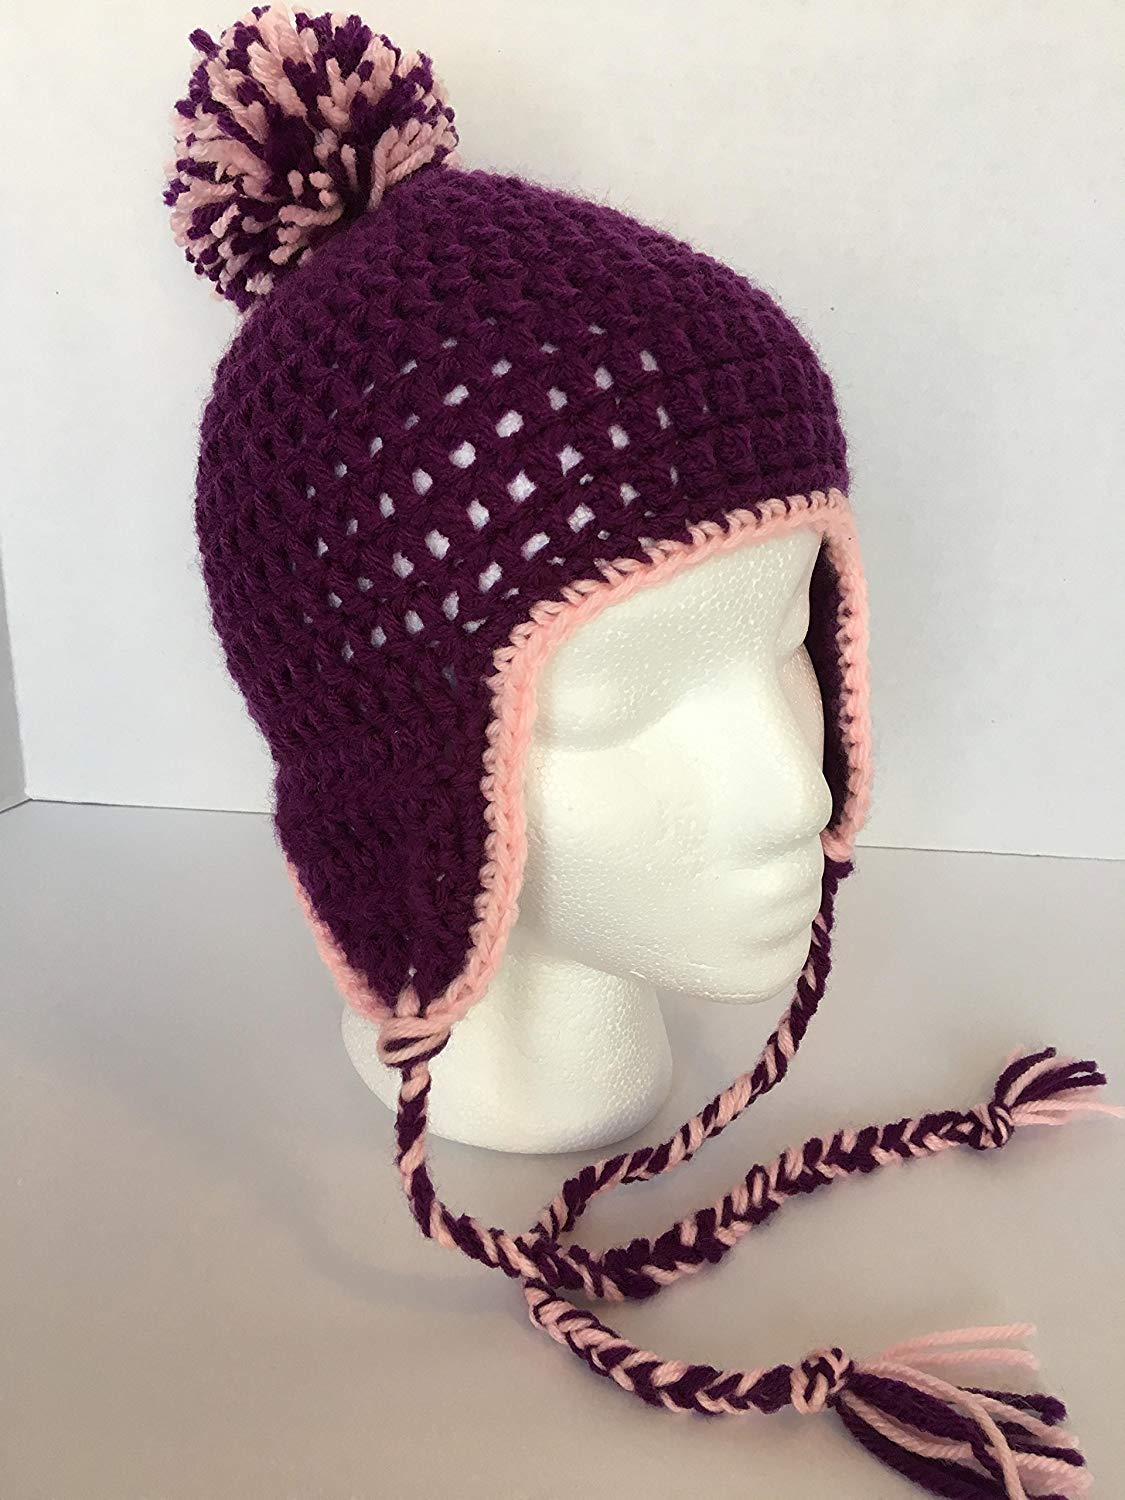 """New, Handmade Crocheted Little Girl's Beanie with Ear Flaps, Purple with Pink Trim, Purple & Pink Pom Pom, with Braided Ties, hat measures 20"""" in circumference, & 7""""' from crown to brim."""